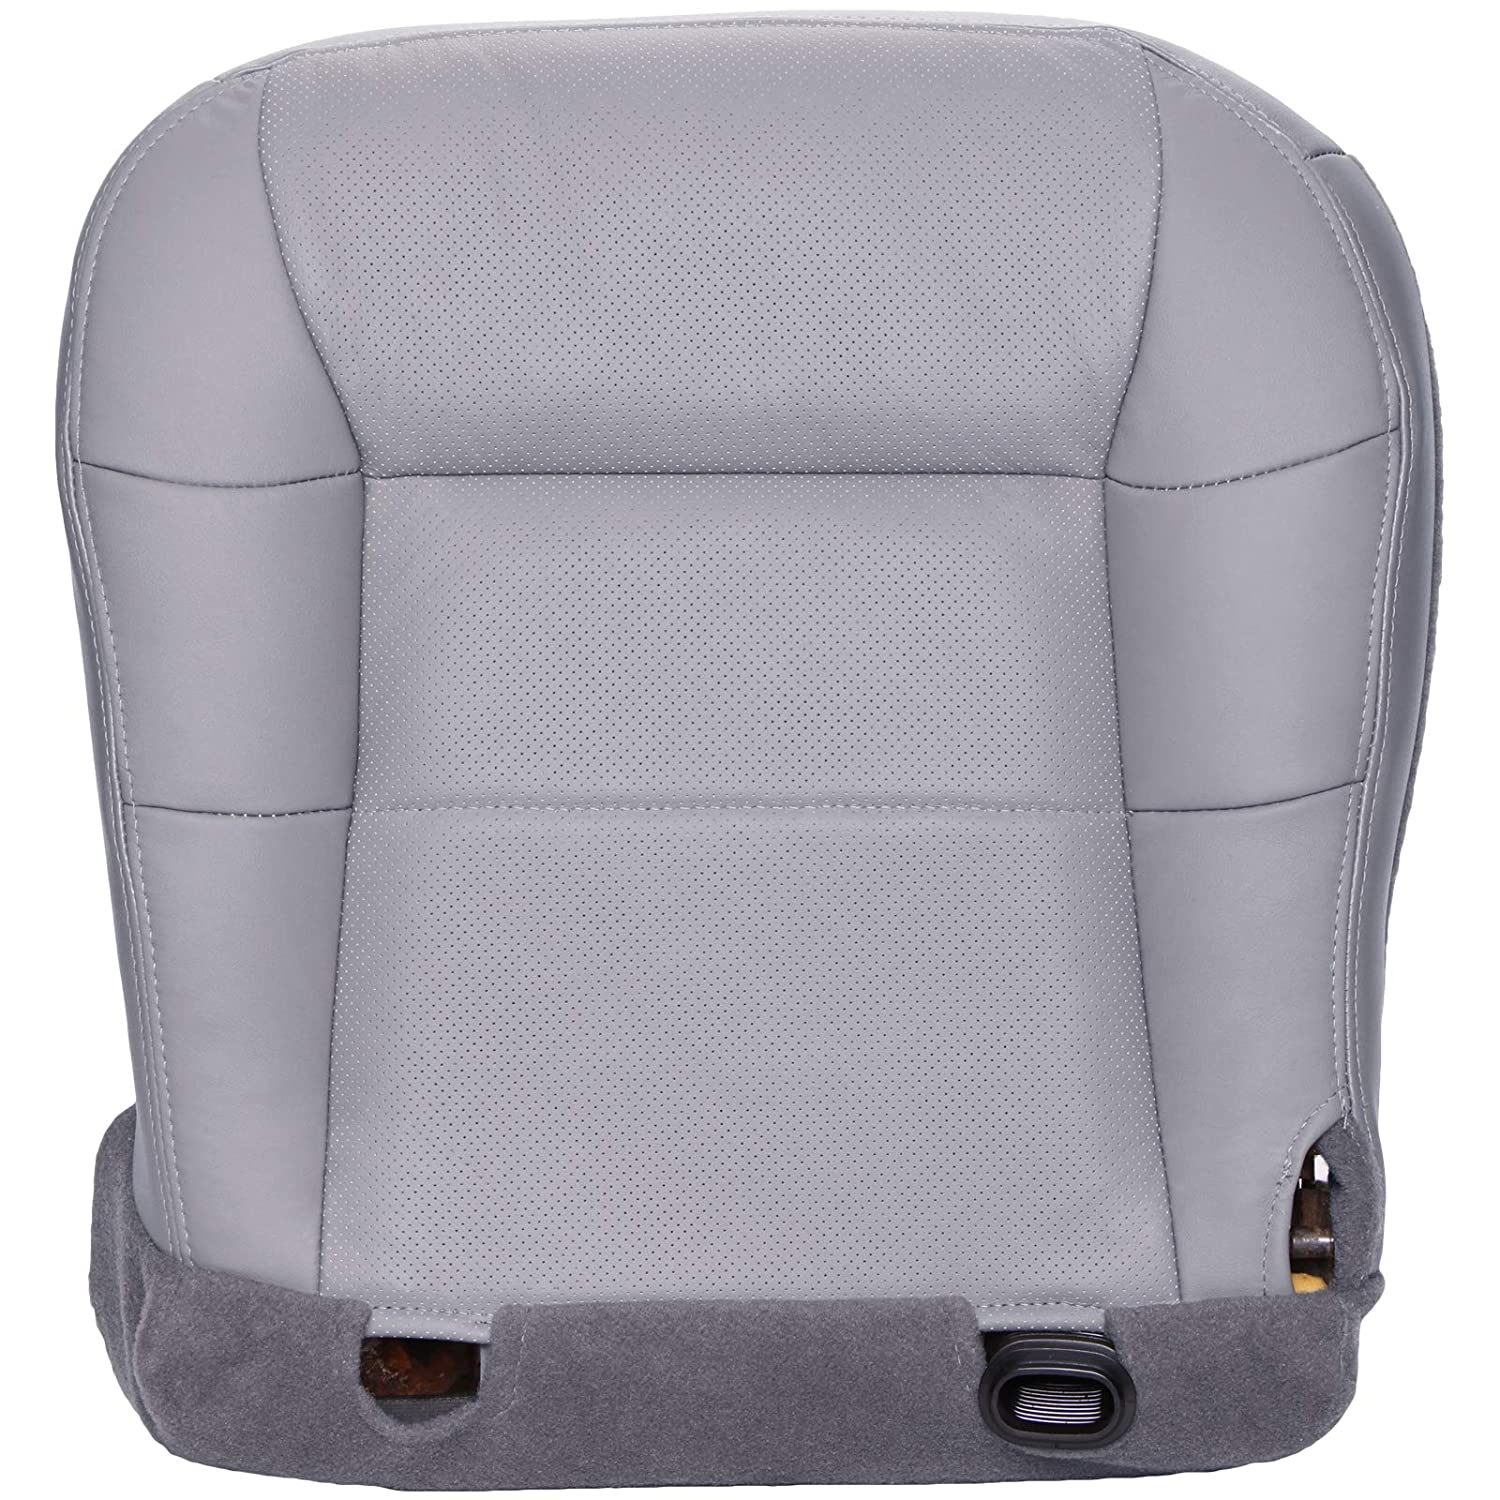 2001 Lincoln Navigator Driver Side Bottom Perforated Leather Seat ...